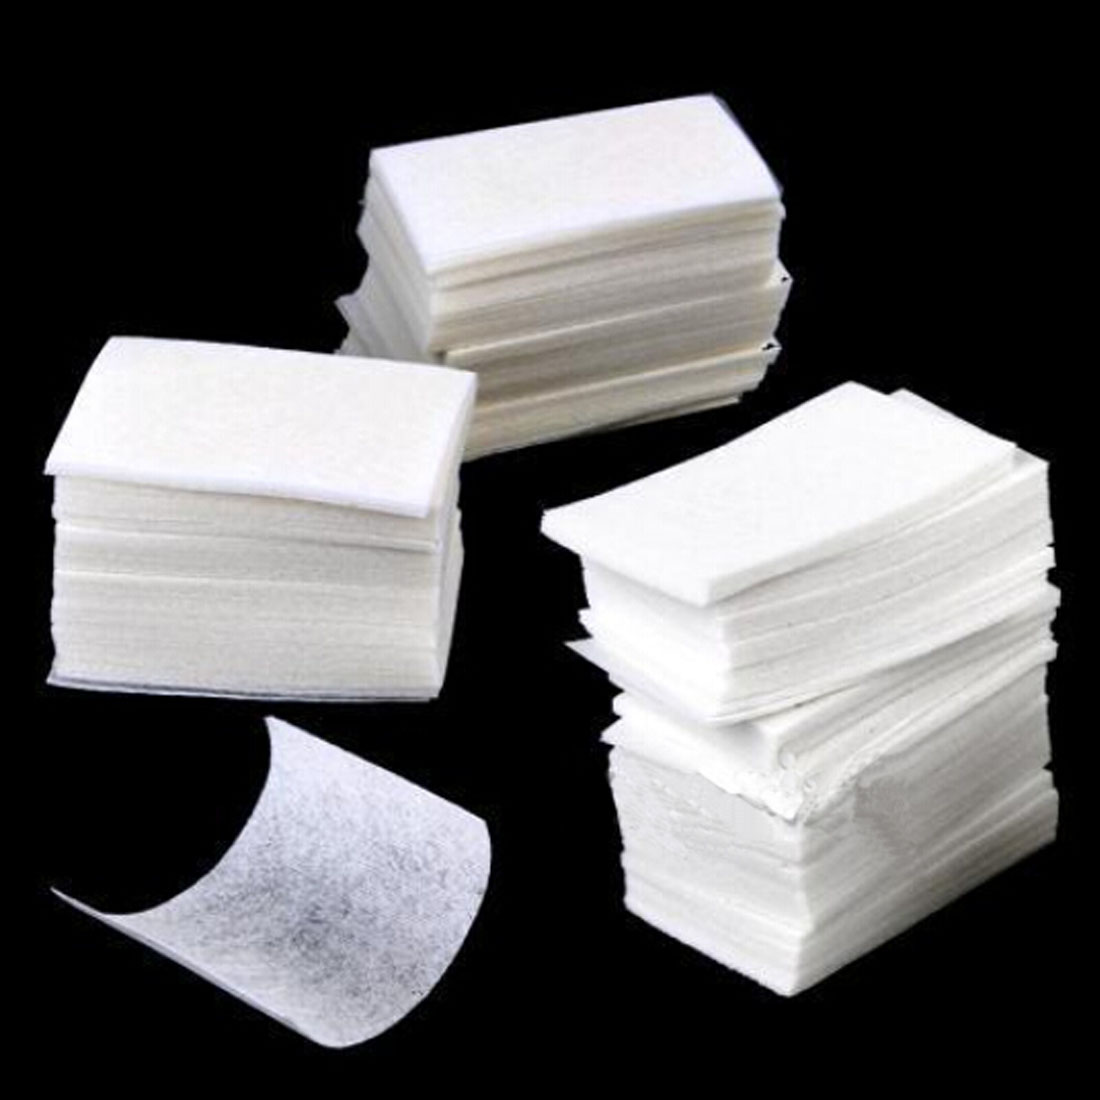 400pcs/set Nail Art wipe Manicure Polish gel nail Wipes Cotton High Quality Lint Cotton Pads Paper Acrylic Gel Tips этикетка для этикет пистолета 22х12 мм белая 1000 шт рул